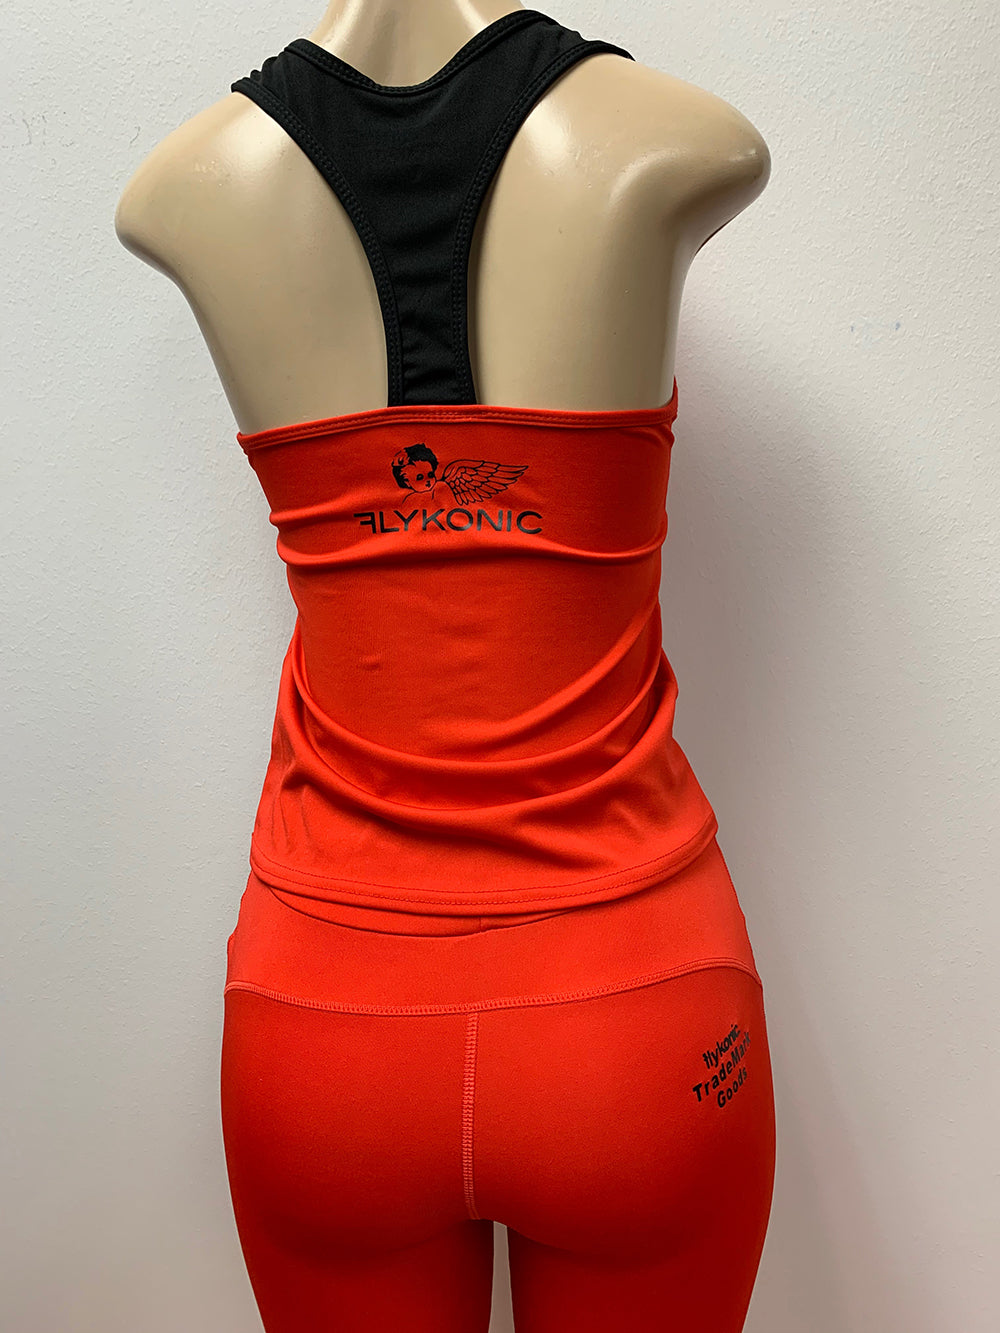 Flykonic Dreams - Ladies Fitness Outfit in Red with black logos